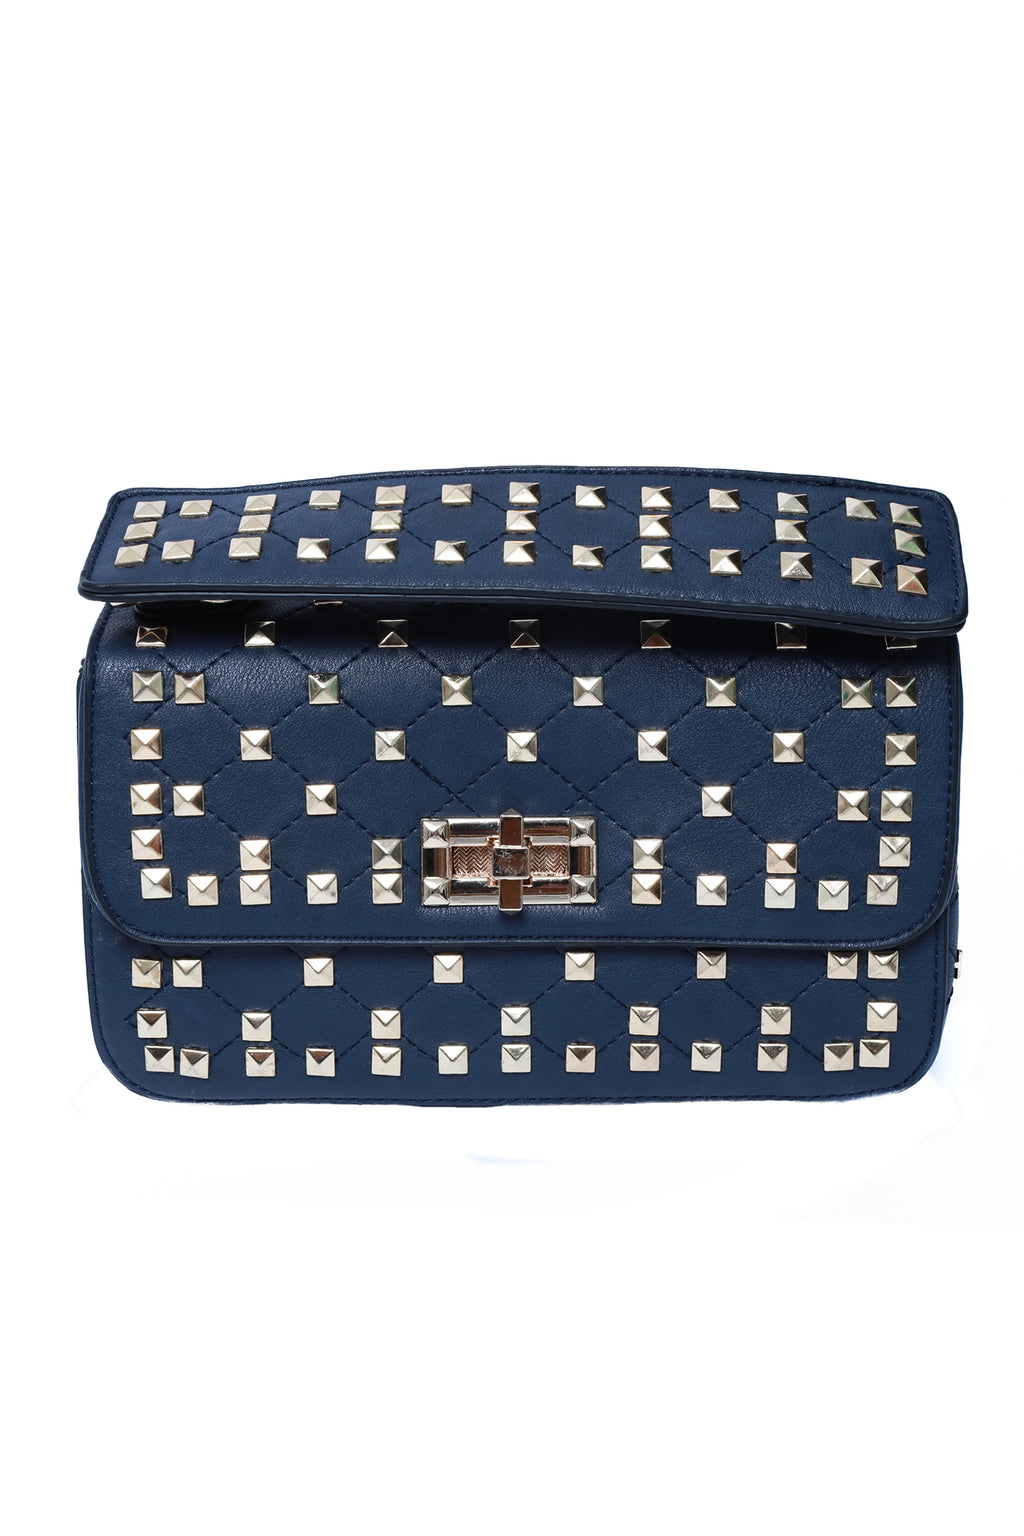 The Rockstud Cross Body Bag Navy